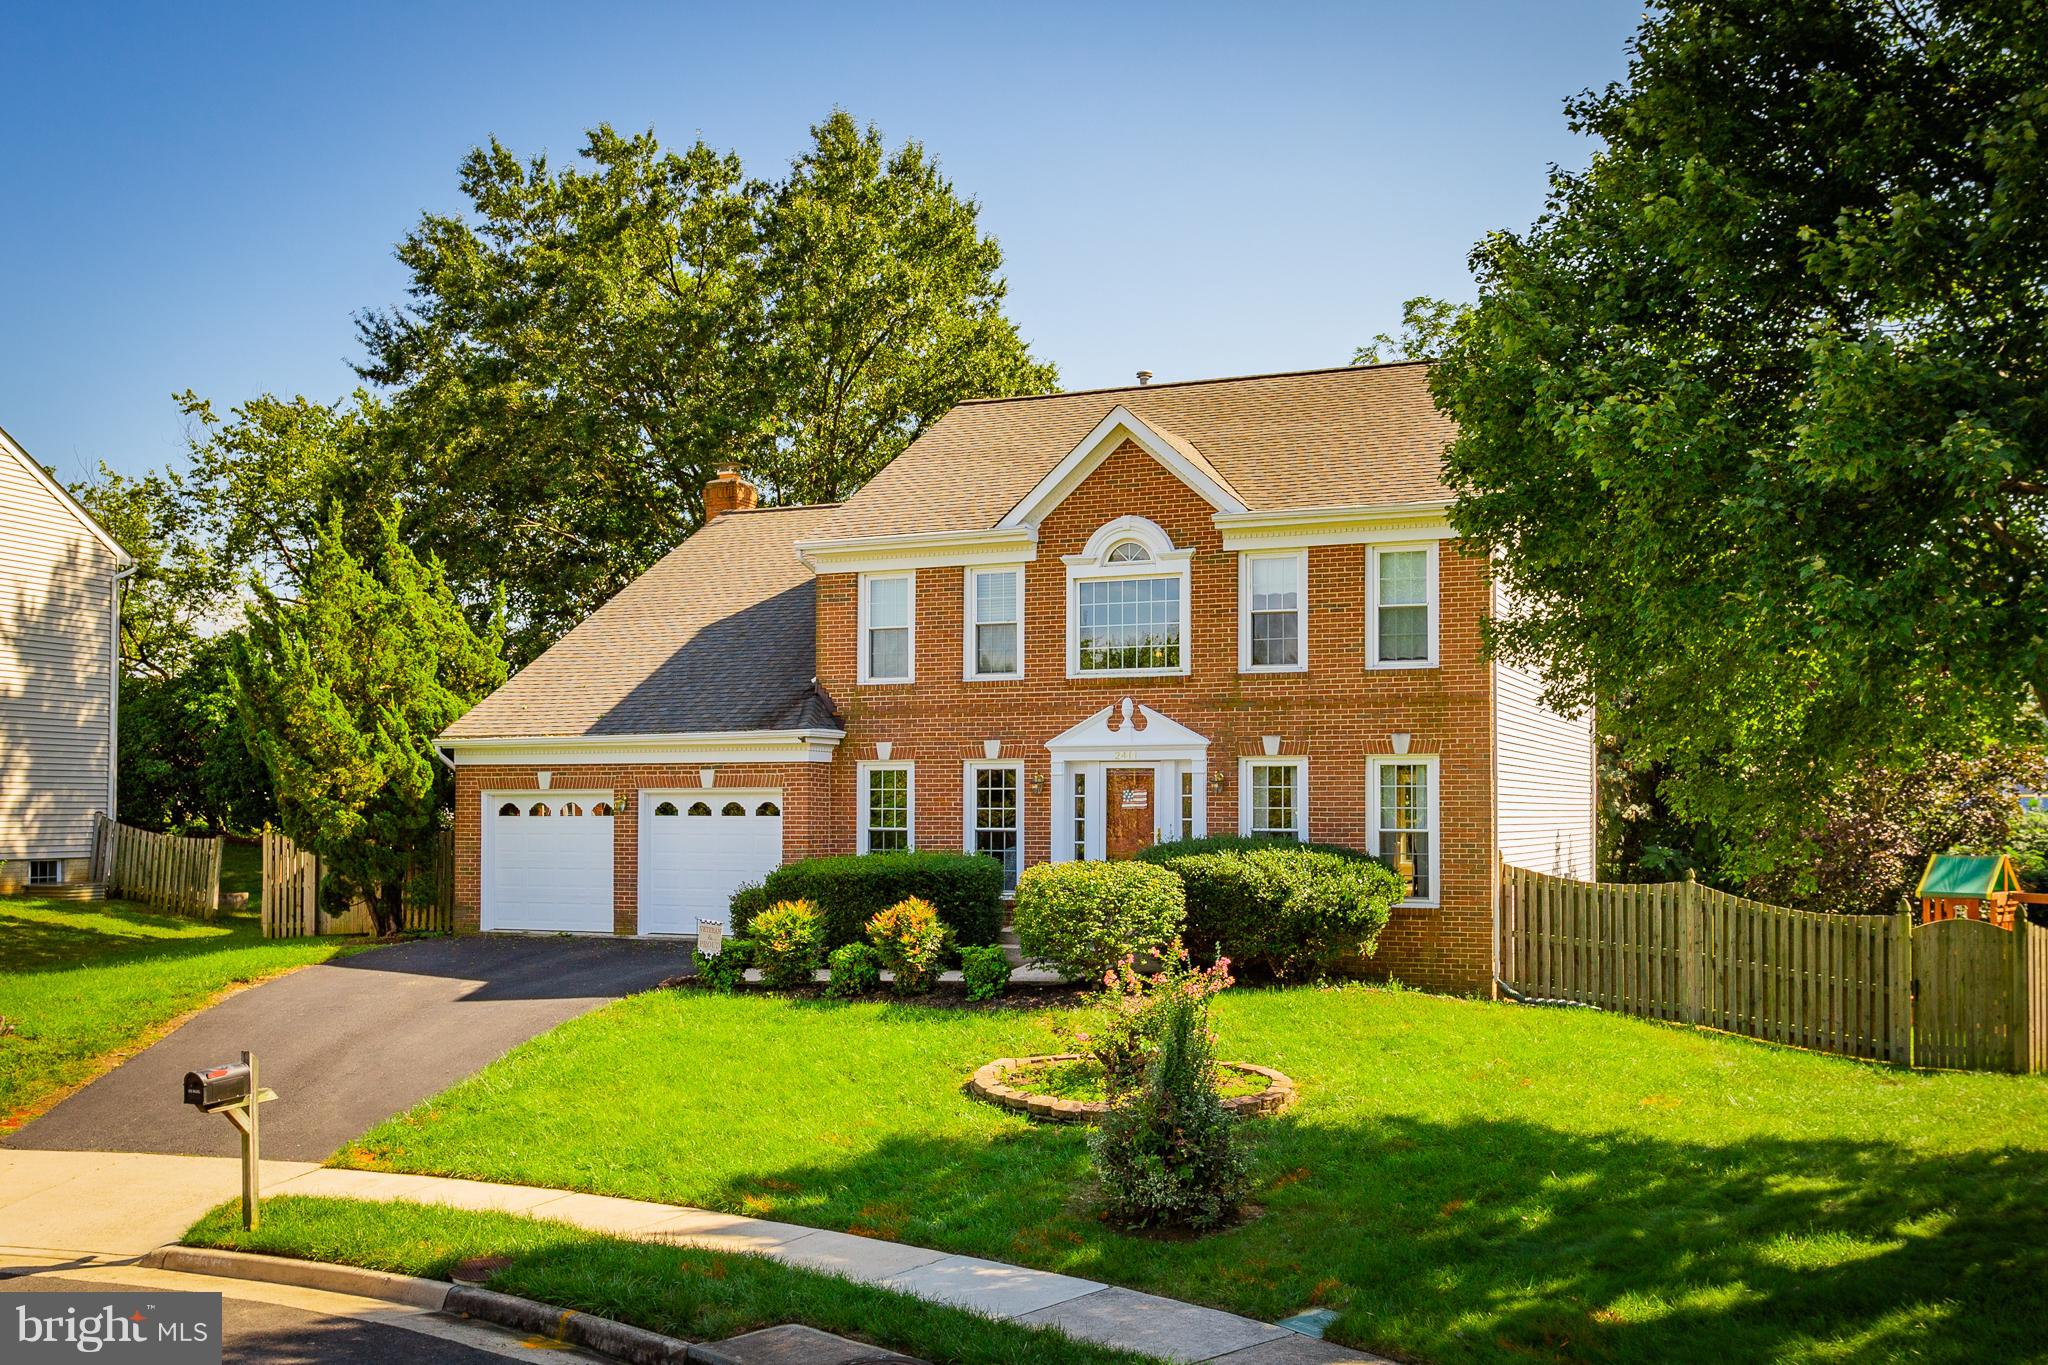 Big Colonial is delightfully updated on a quiet cul-de-sac w/private fenced yard, Trex deck & garden area! Two-story Foyer! Main Study! Spacious LivingRm & rear DiningRm w/Bay Window- Updated Kitchen w/granite & Island w/breakfast bar is well-equipped! Cathedral MBR w/Sitting Rm & Luxury Bath- Finished LL has Media & Game Area, Den w/FBA & RecRm w/Wet Bar!  Close to shops, beltway, OldTown & more!